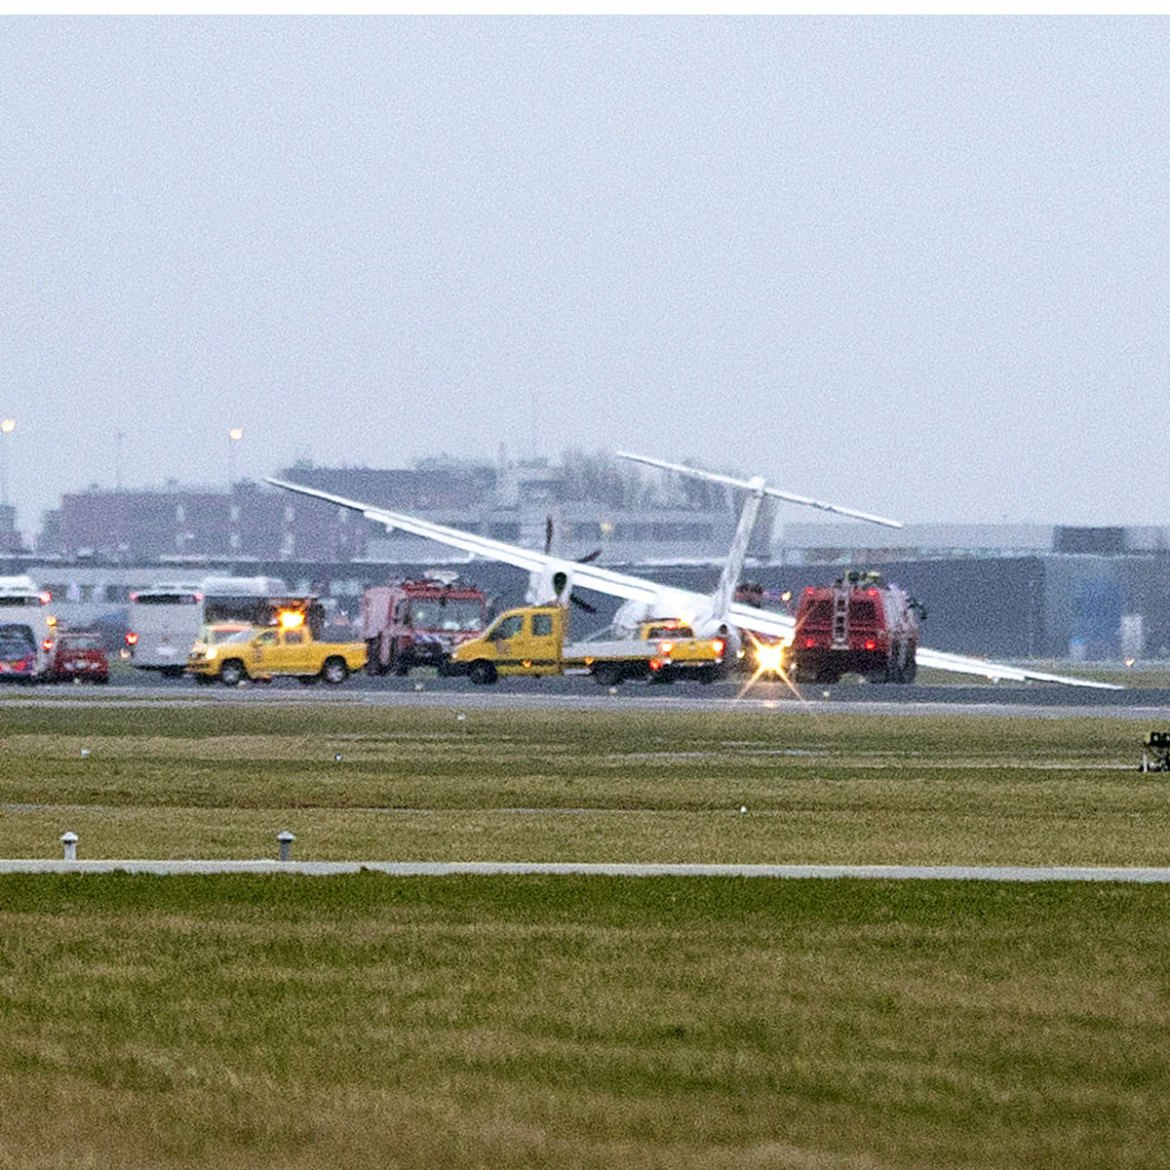 Emergency vehicles arrive after a plane veers off the runway amid a storm at Schiphol Airport. Its landing gear collapsed on approach, but no passengers were injured. [Michel van Bergen/AFP]